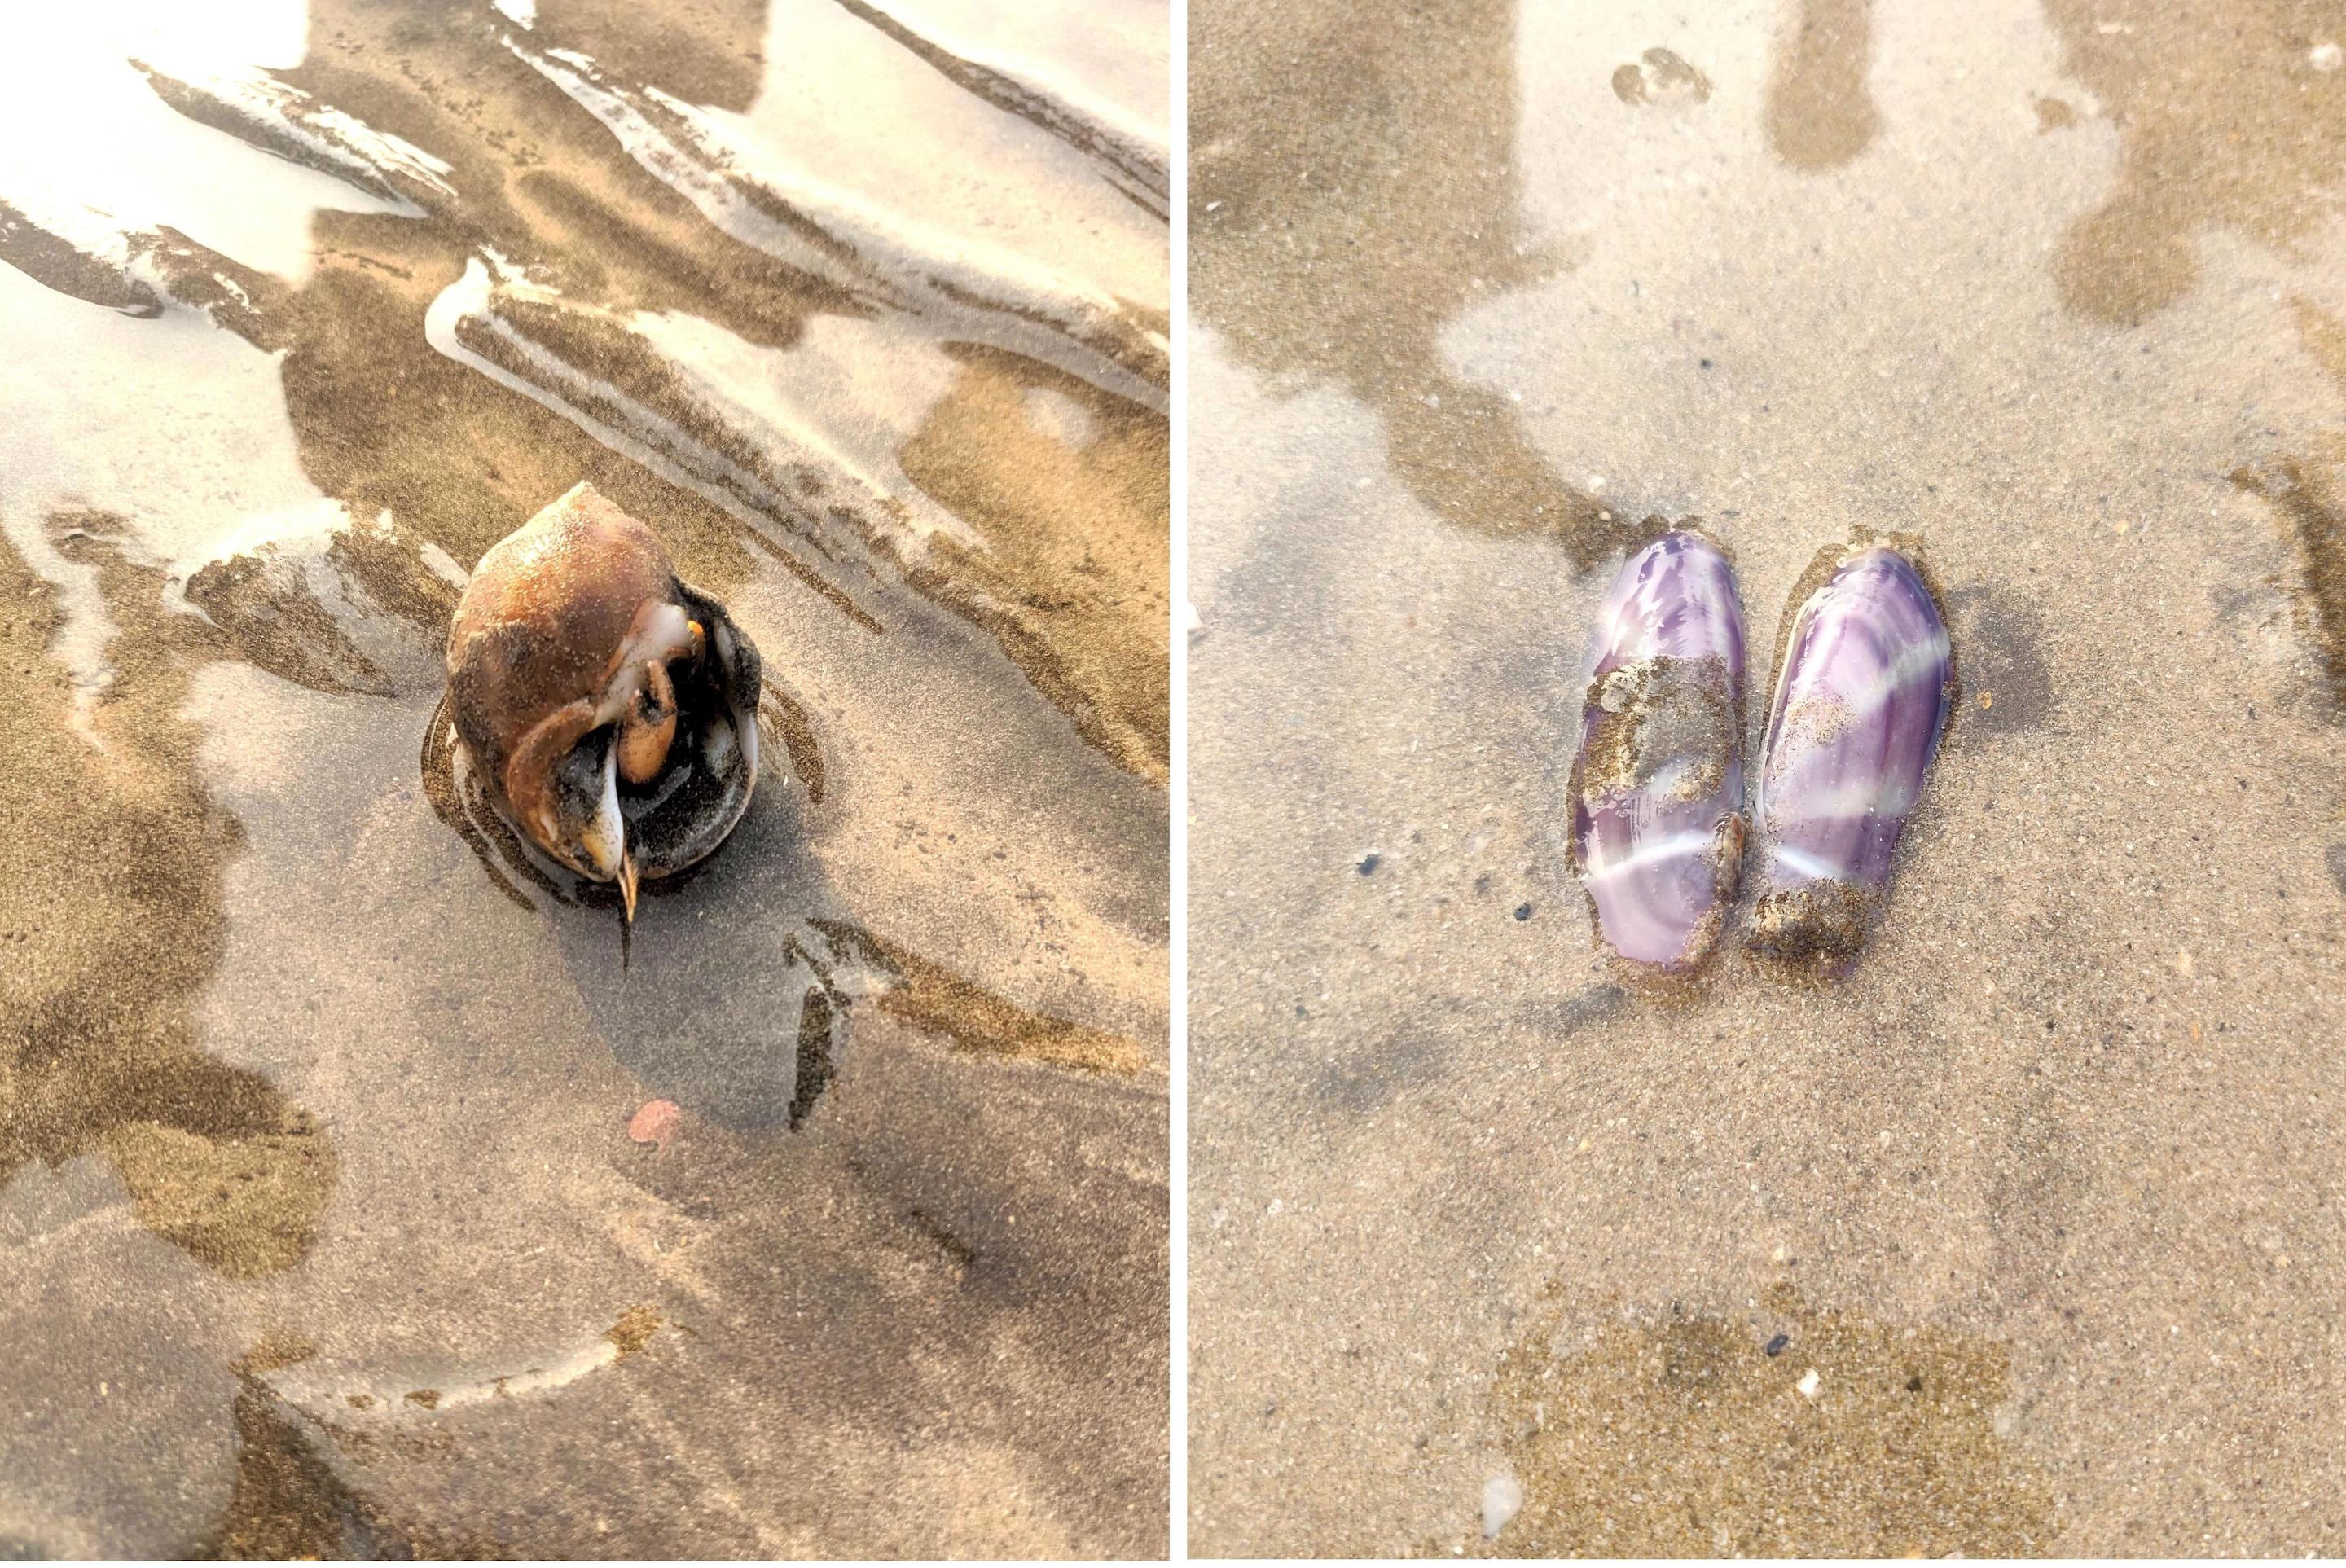 Caption: (Left) Hermit crabs are the most commonly found crabs on Mumbai's shores. They have an elongated soft abdomen with no protective covering and thus live in the discarded shells of snails. (Right) Sunset siliqua is a mollusc named because of the pattern of rays on its back. Photos: Joanna Lobo